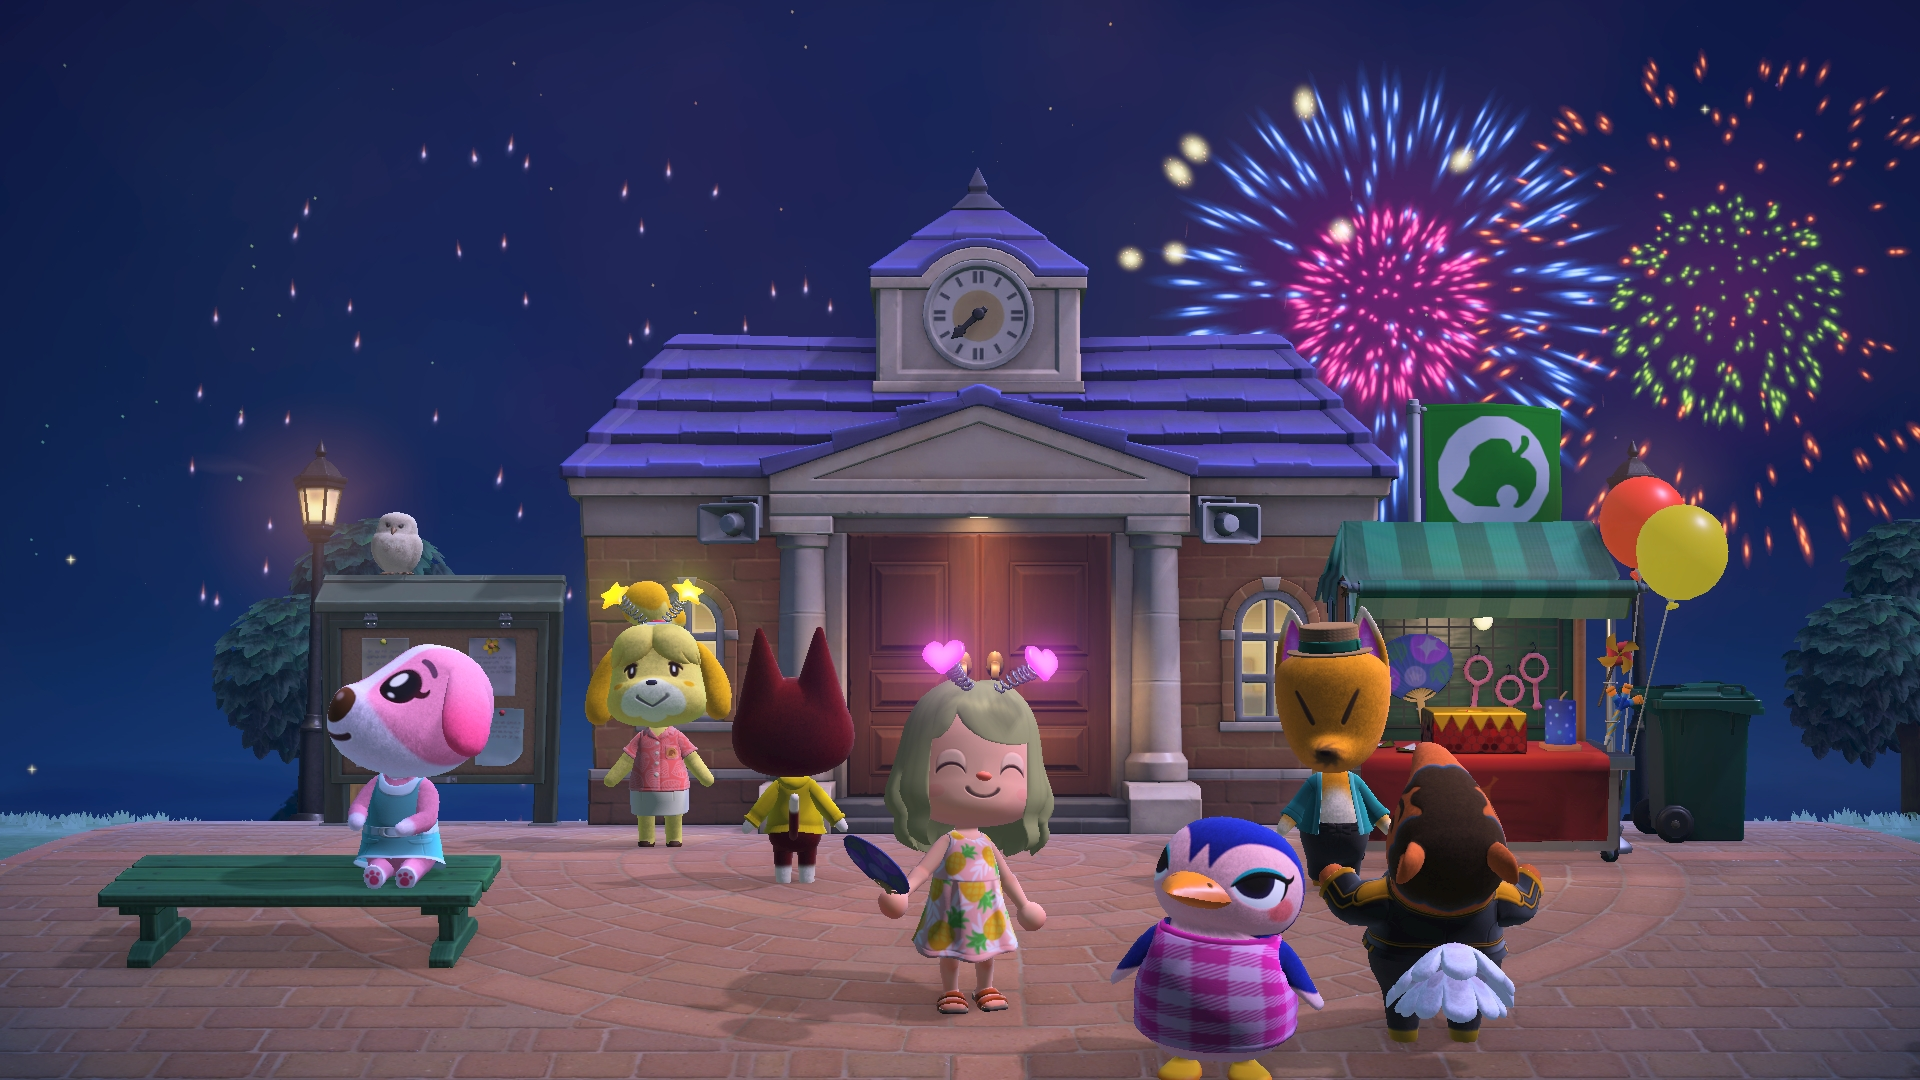 A village watches a fireworks show in Animal Crossing: New Horizons